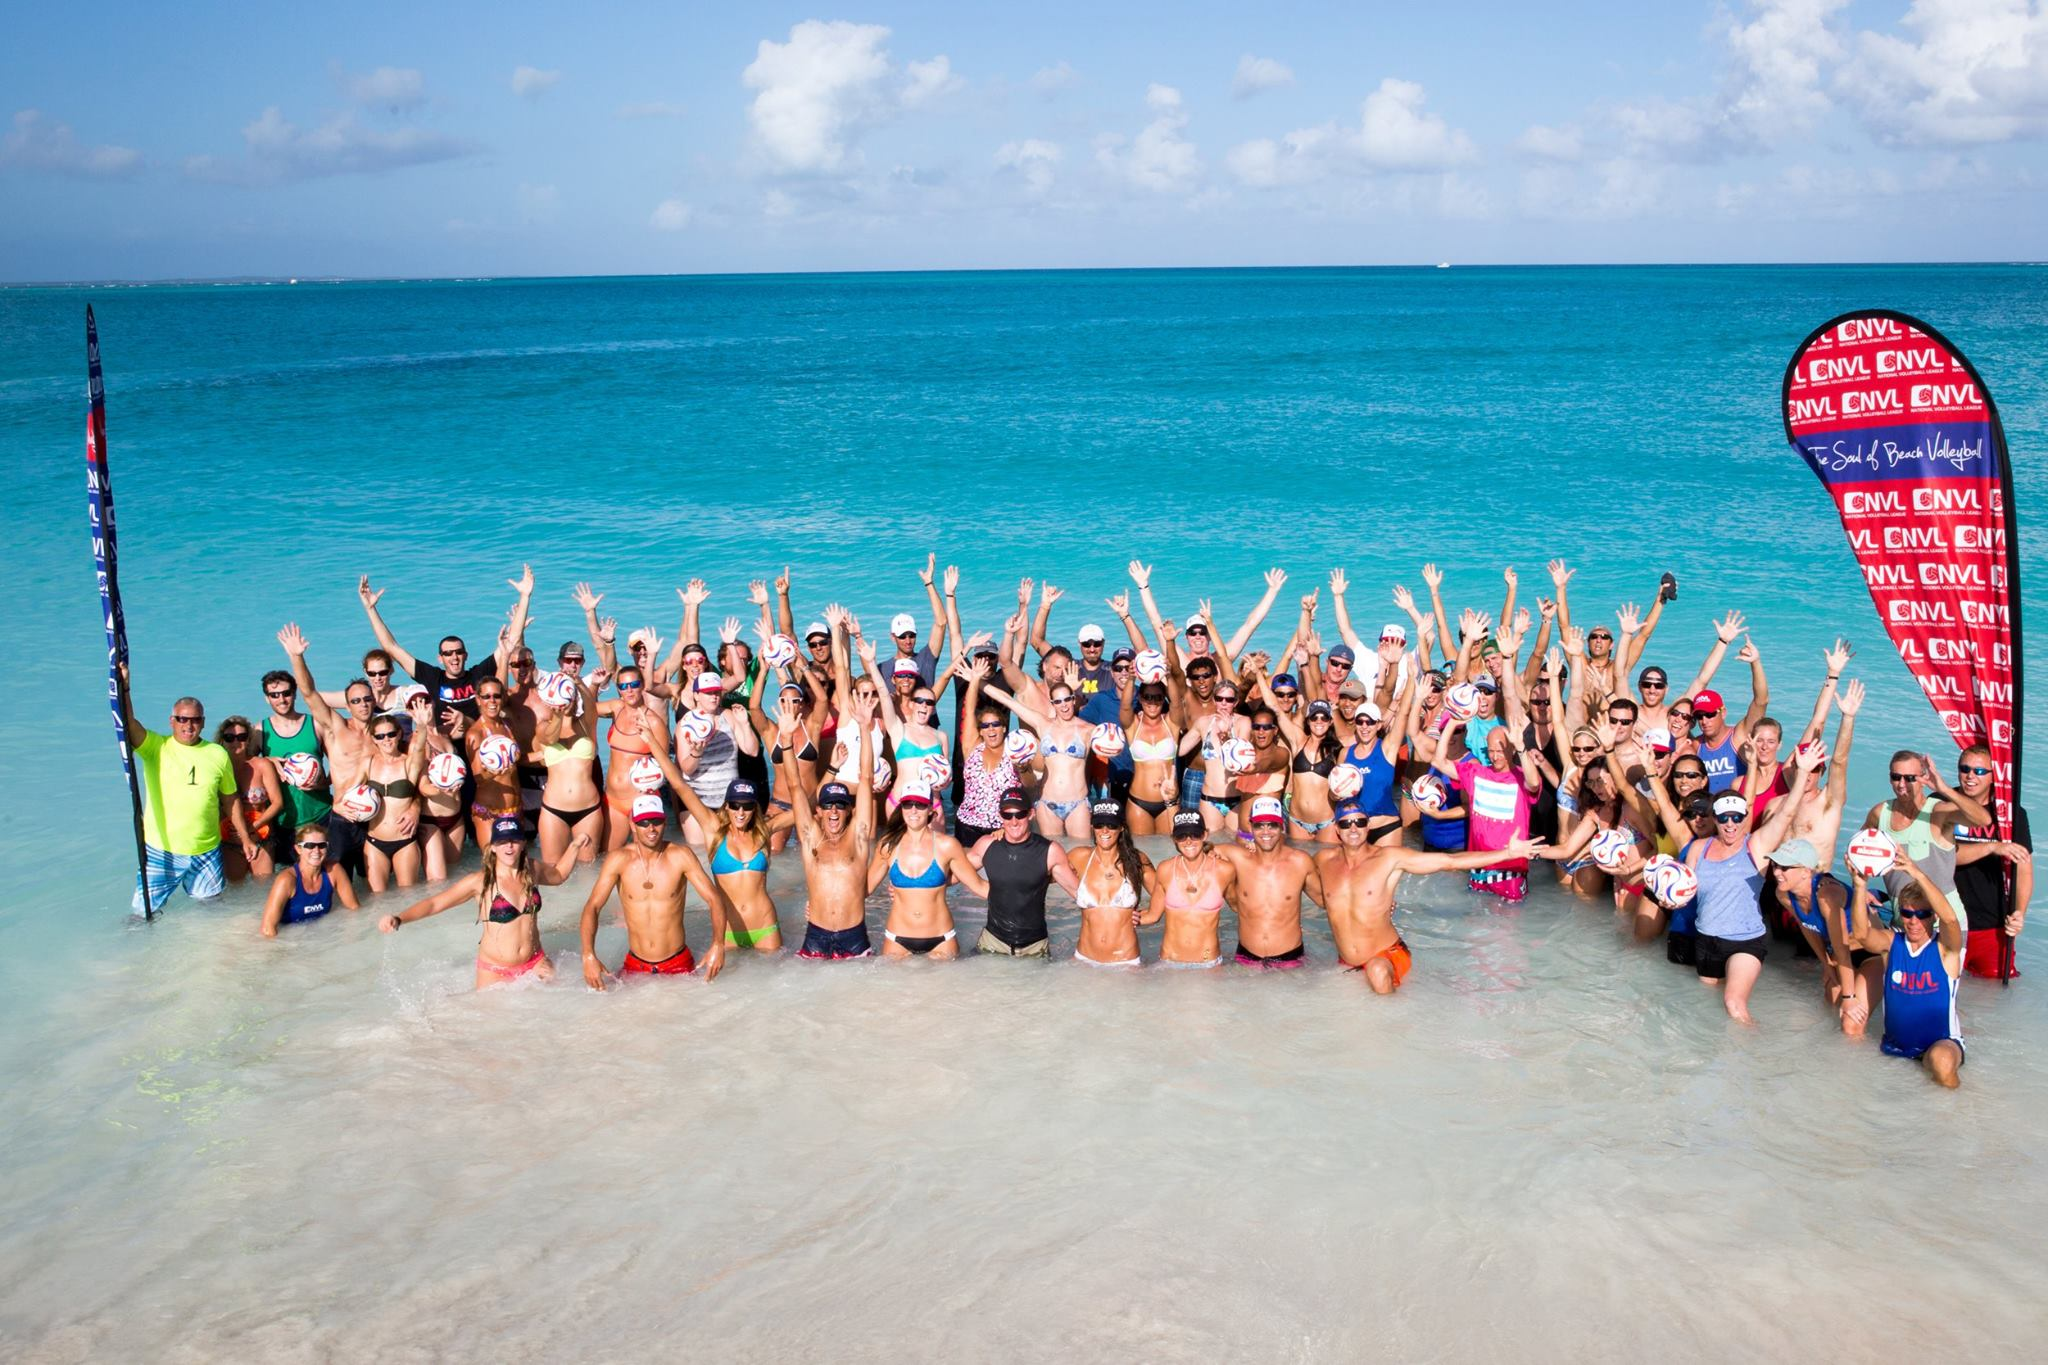 Top 10 Things You Missed from the 2015 Turks & Caicos Volleyball Vacation